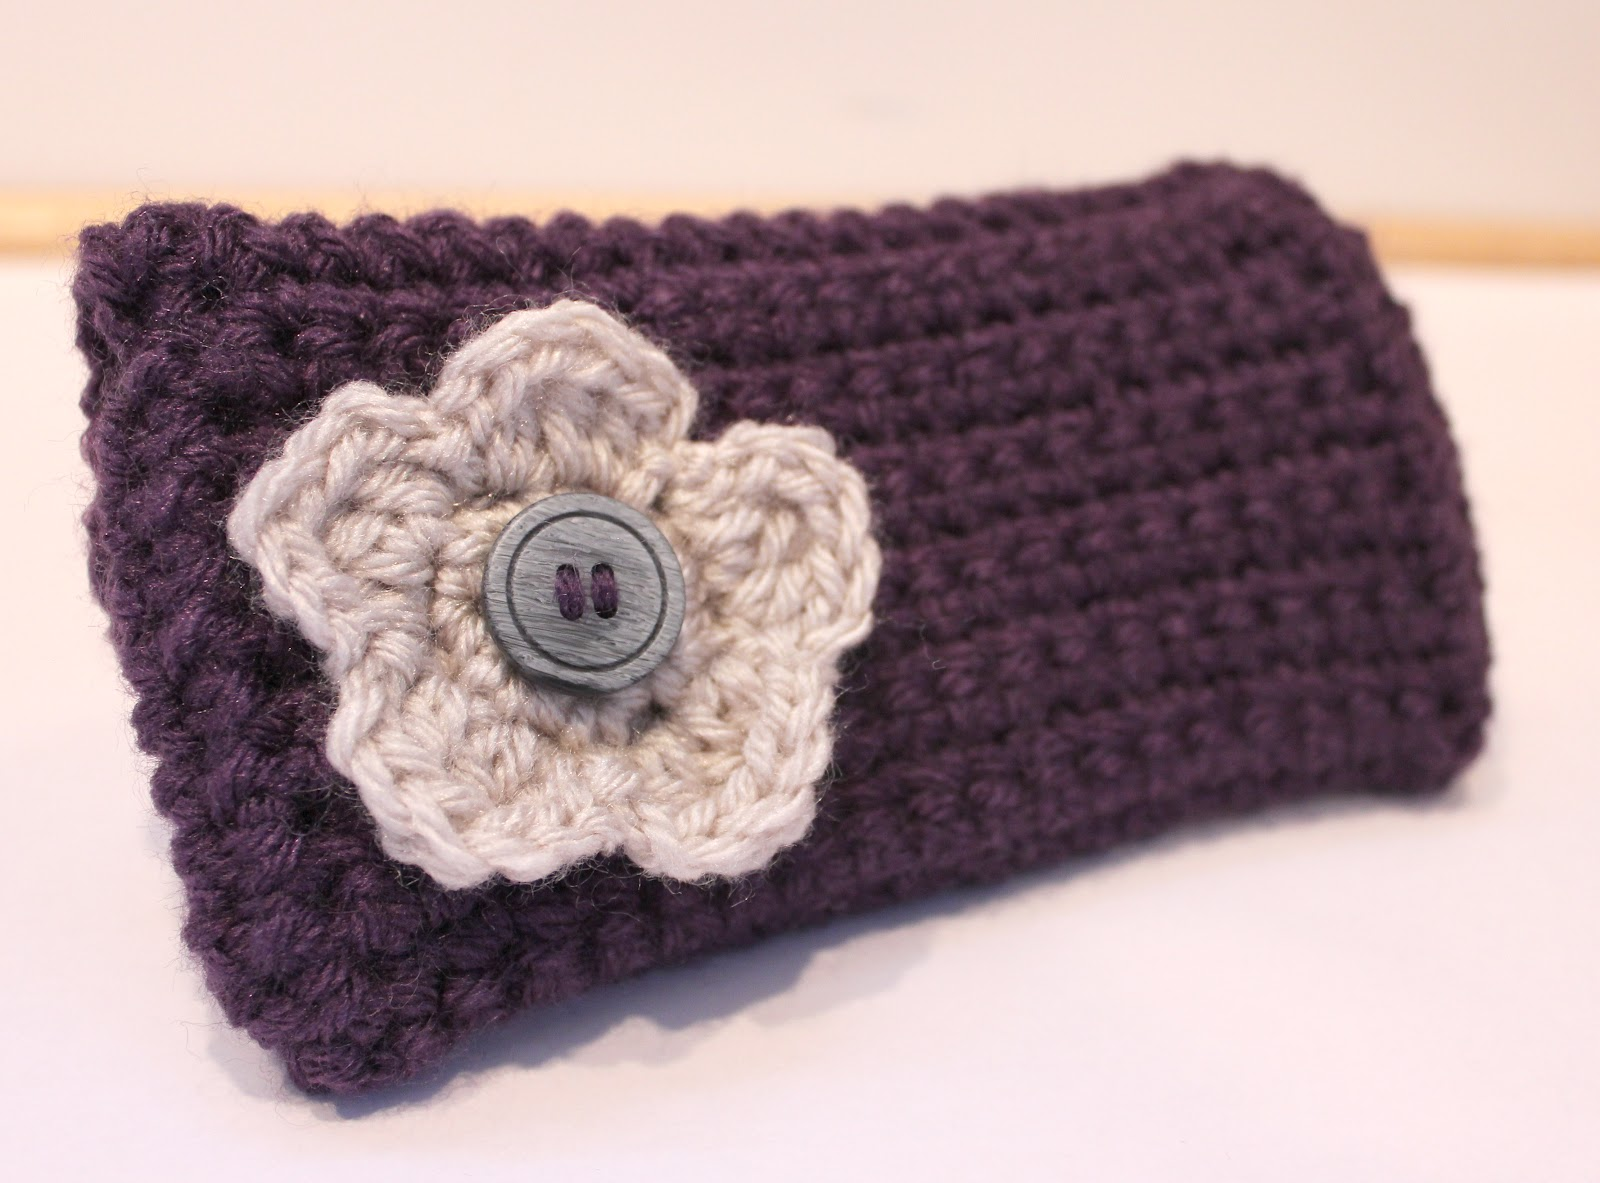 Crochet clutch repeat crafter me it is the perfect size to hold credit cards coupons mints make up pocket tissues and much more a great accessory for your diaper bag or purse bankloansurffo Gallery